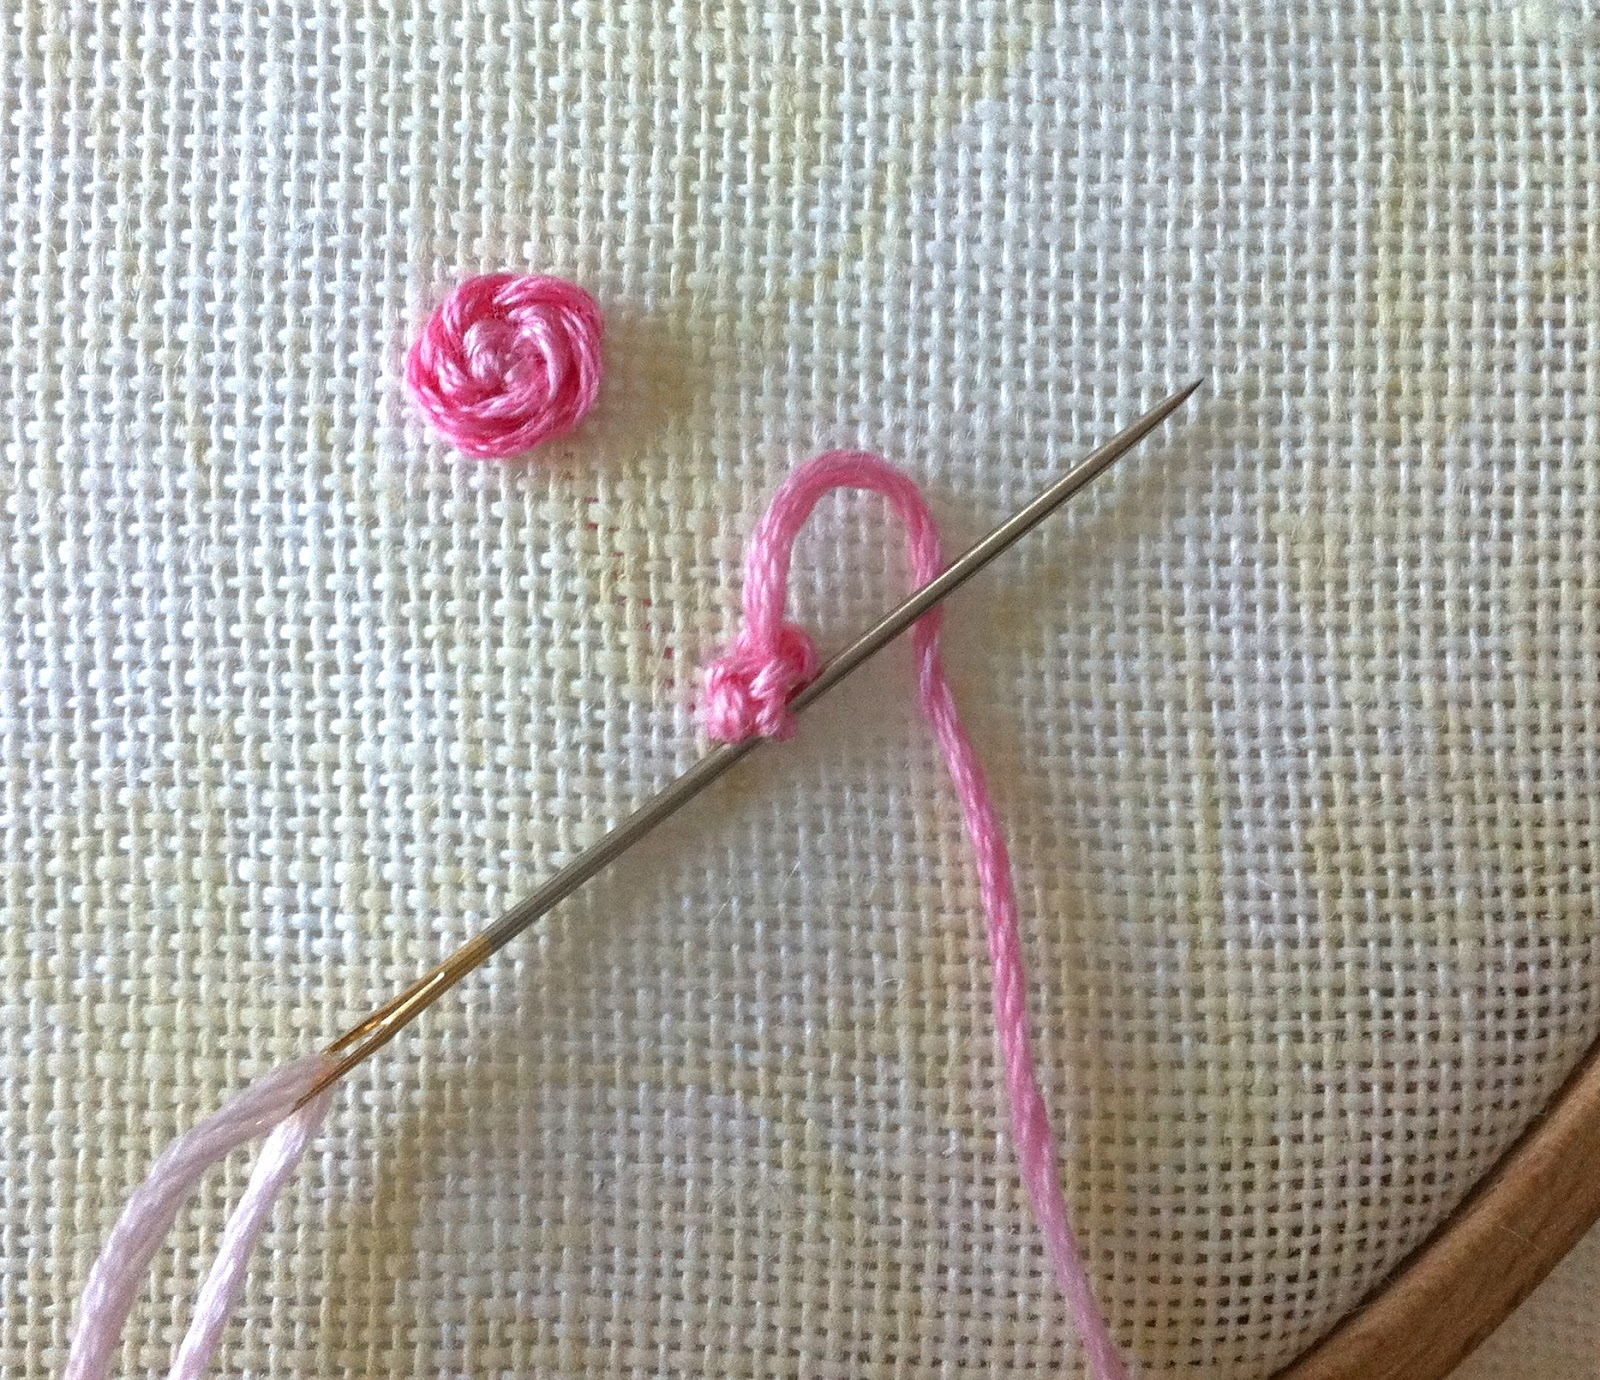 Humming Needles Stem Stitch Rose With Knotted Center - Tutorial